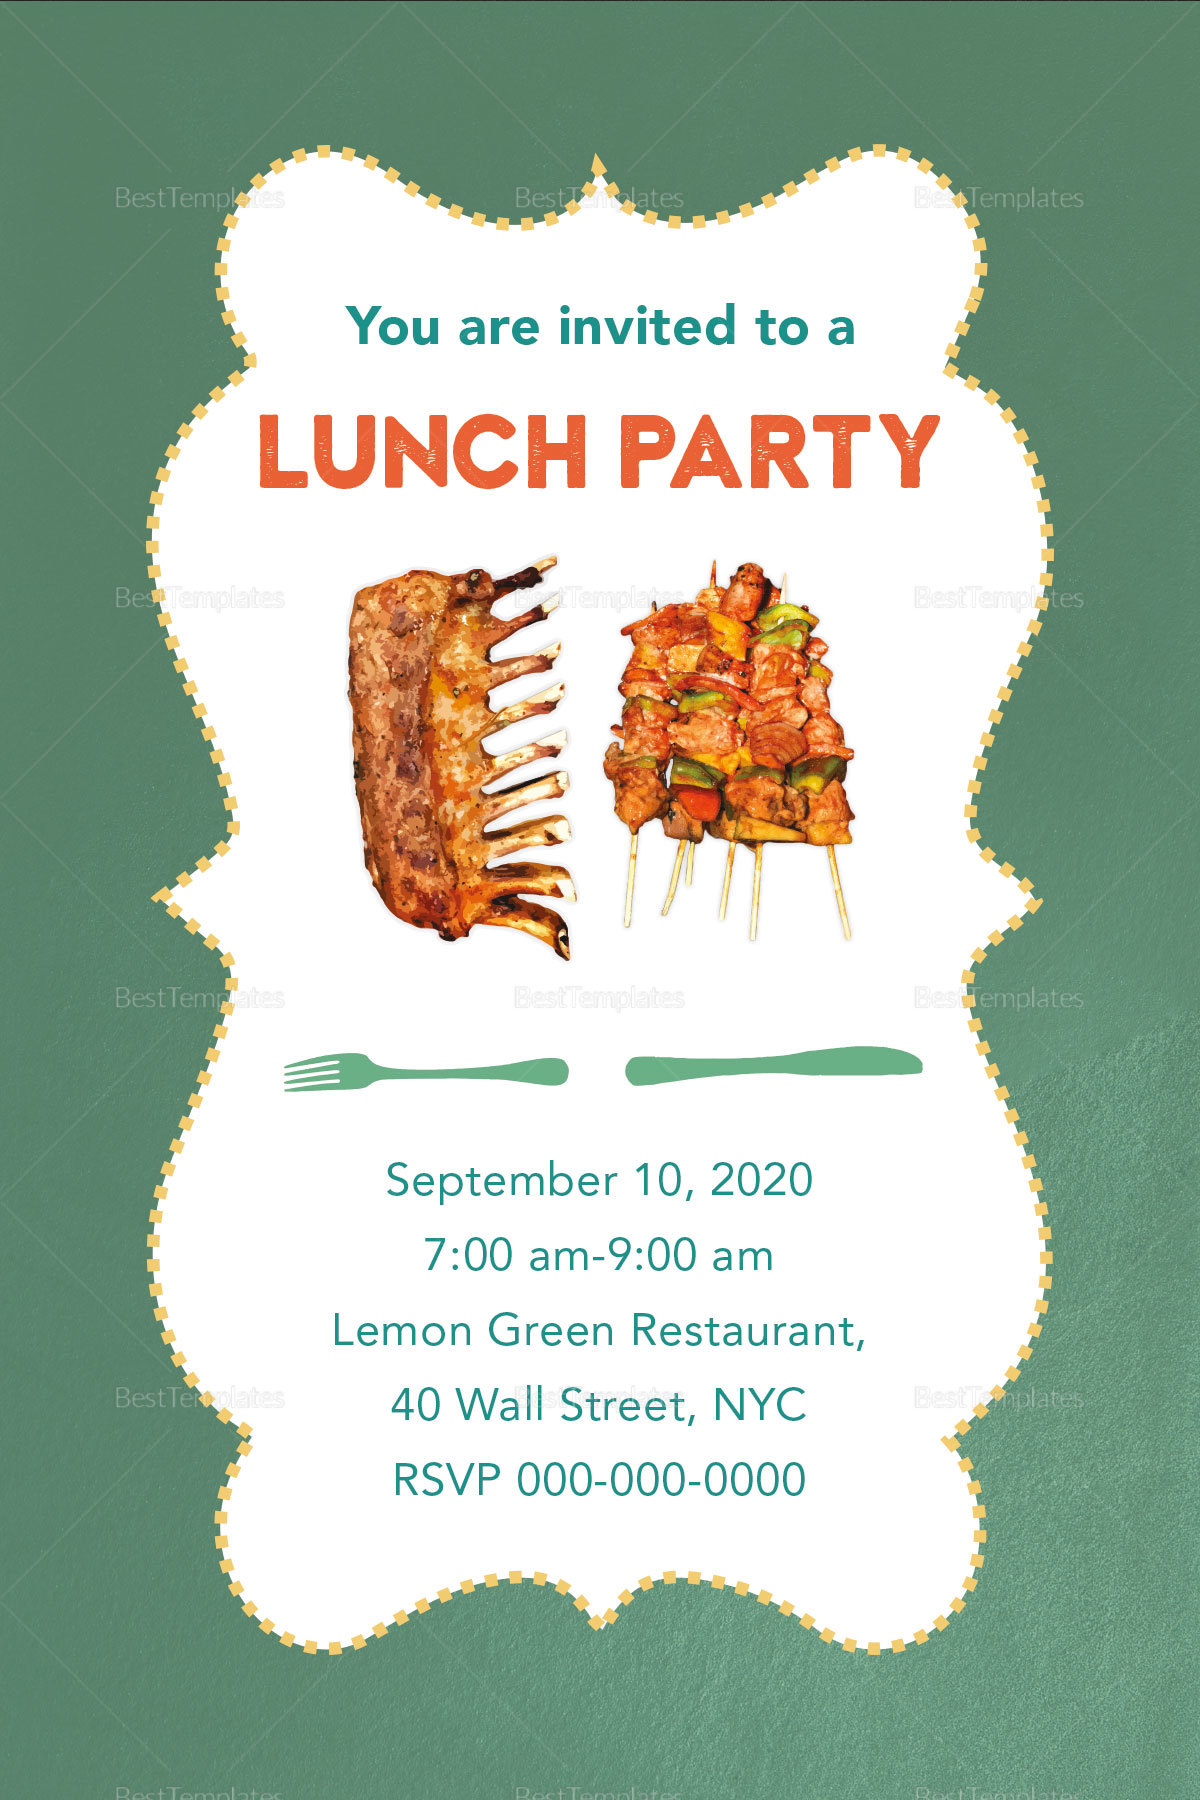 Lunch Party Invitation